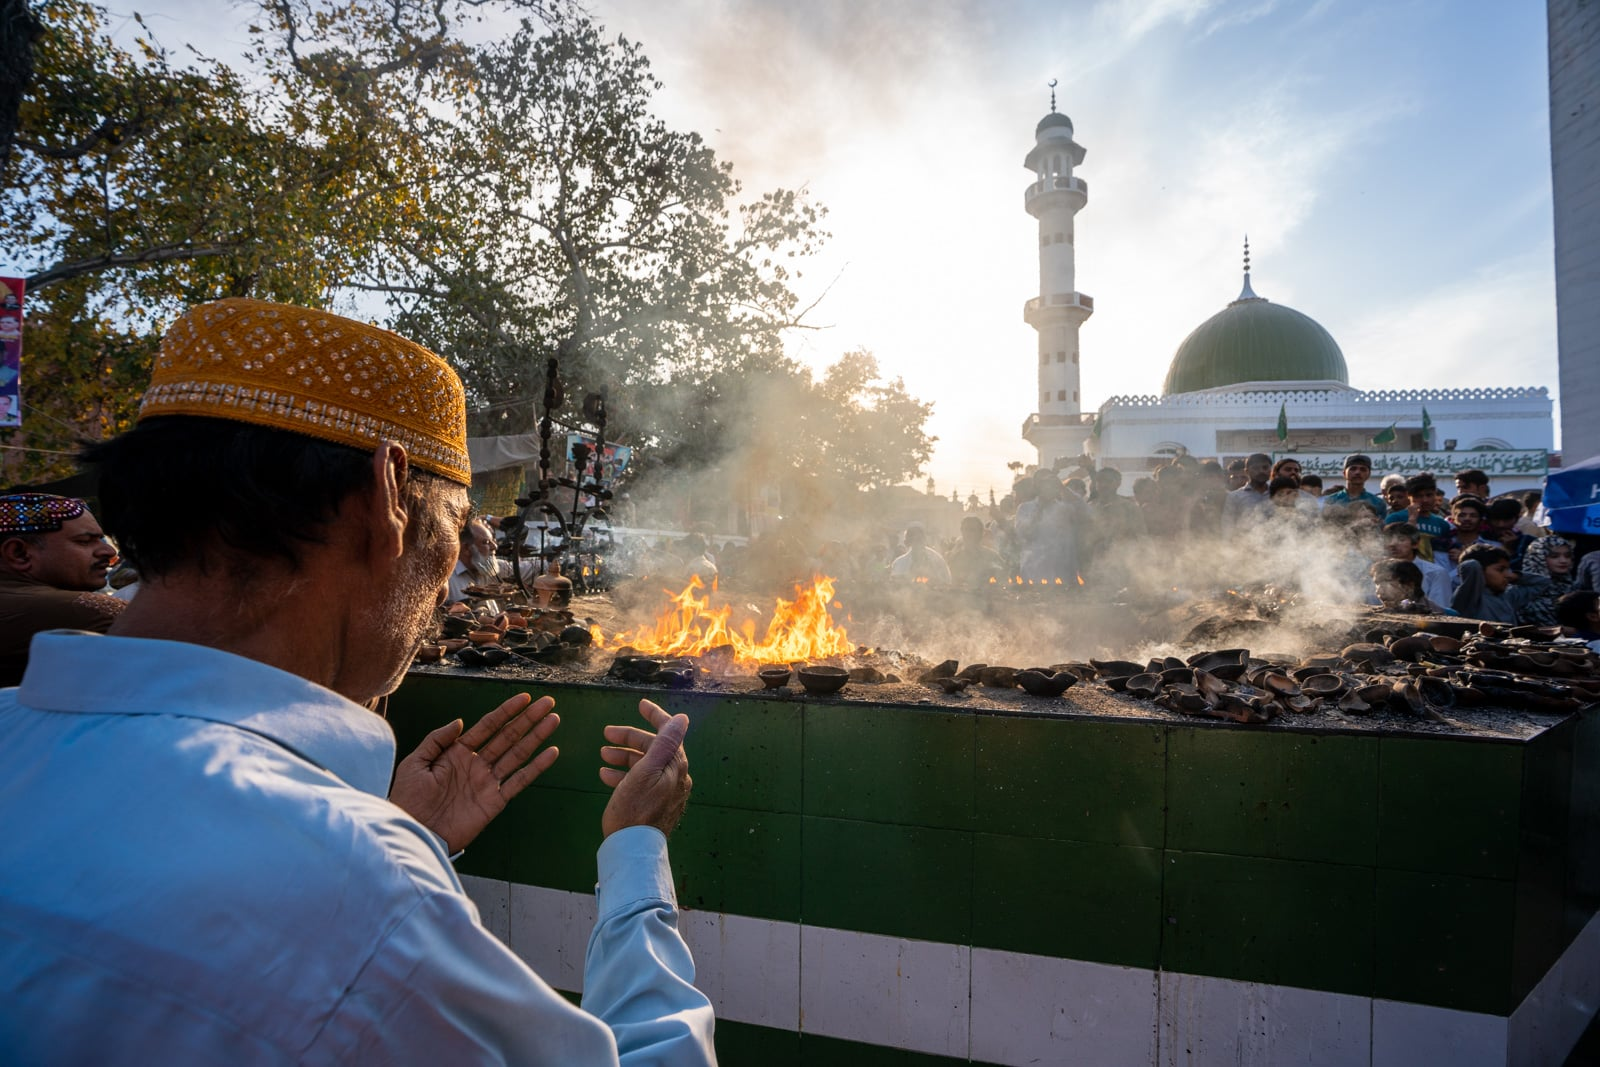 Man praying at a sufi shrine in Lahore, Pakistan